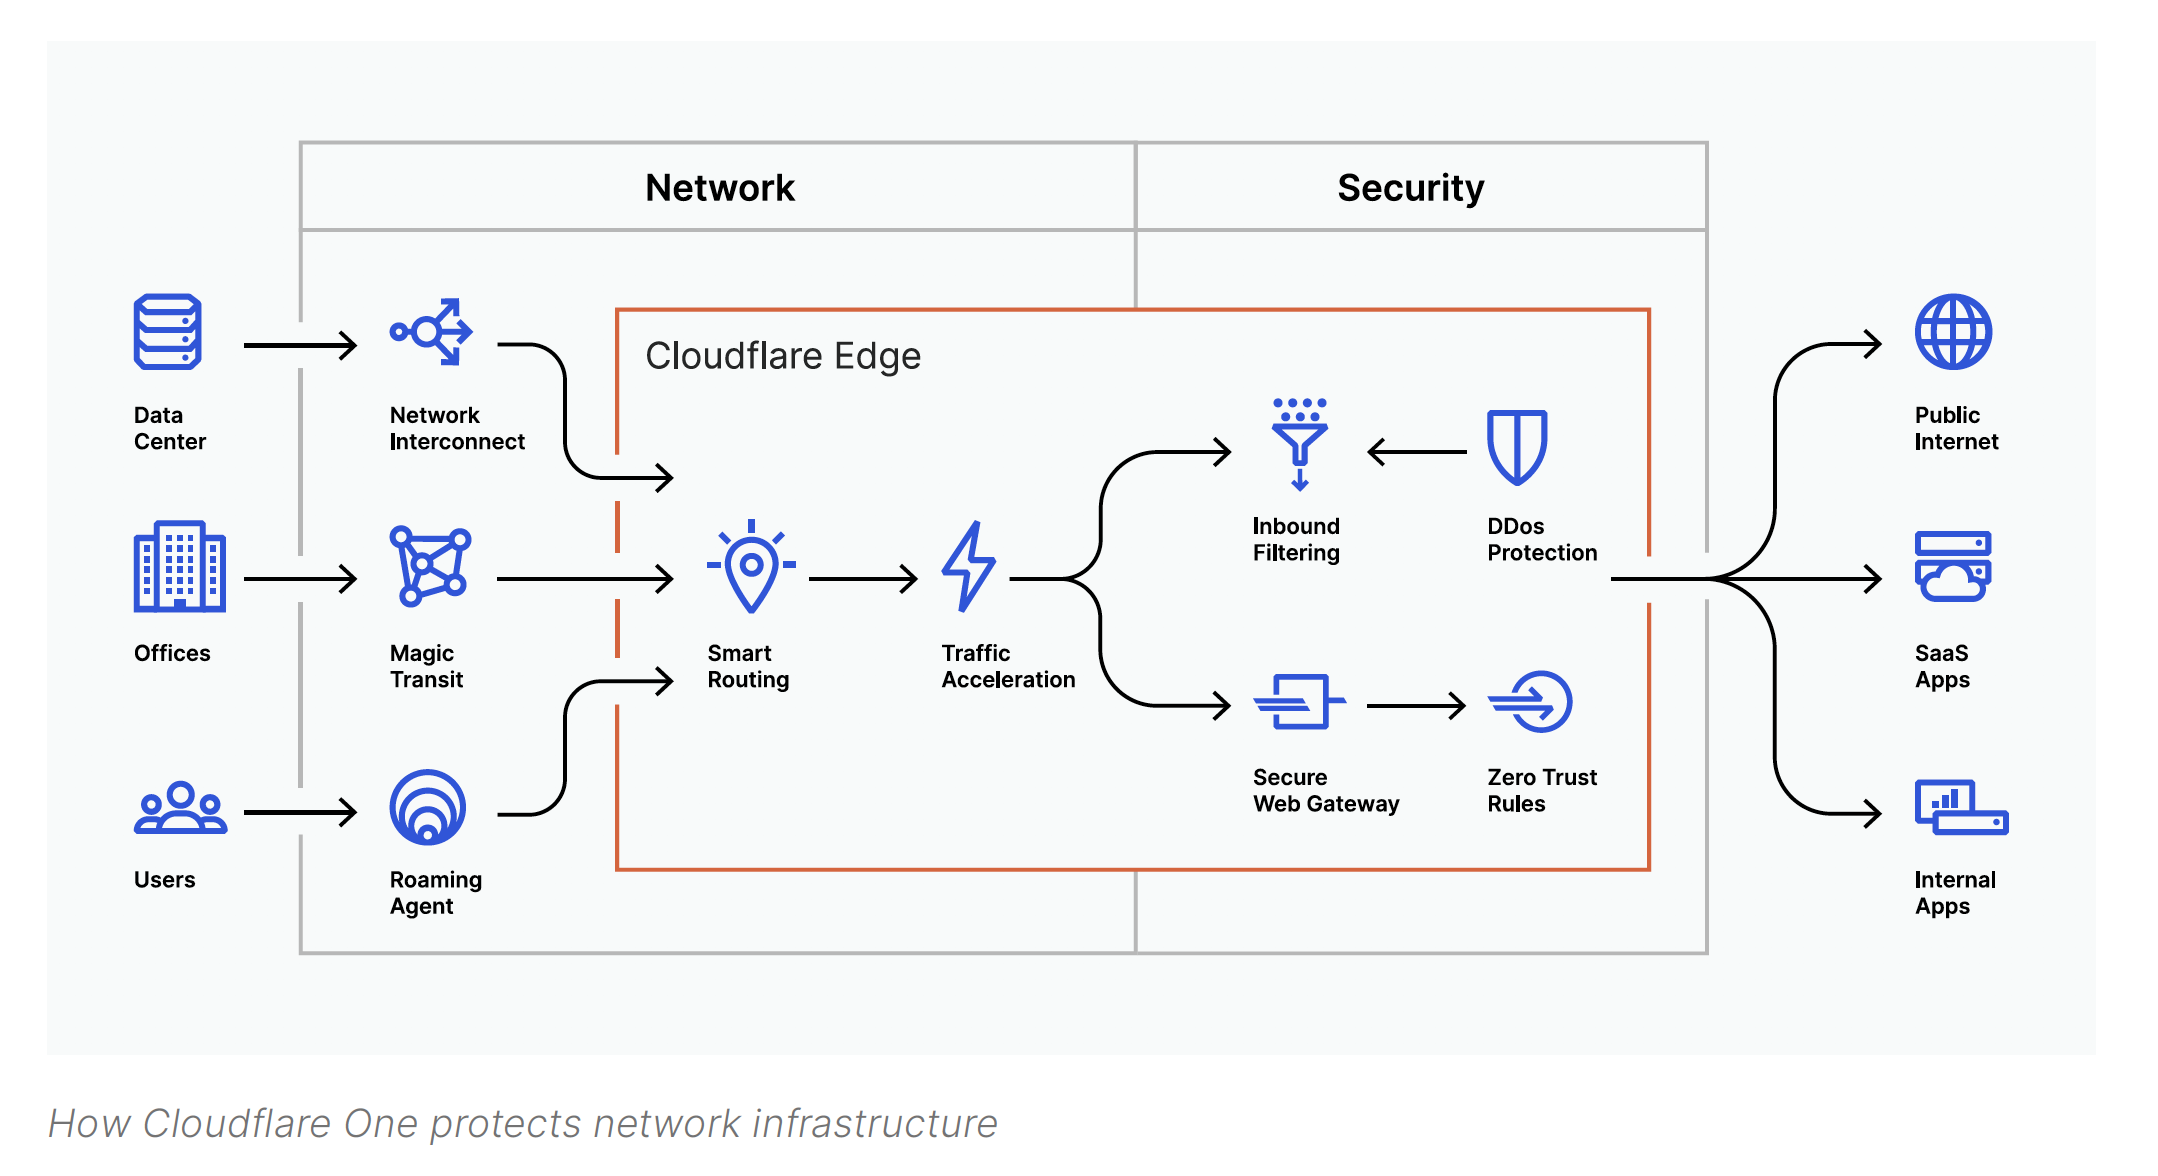 How Cloudflare One protects network infrastructure